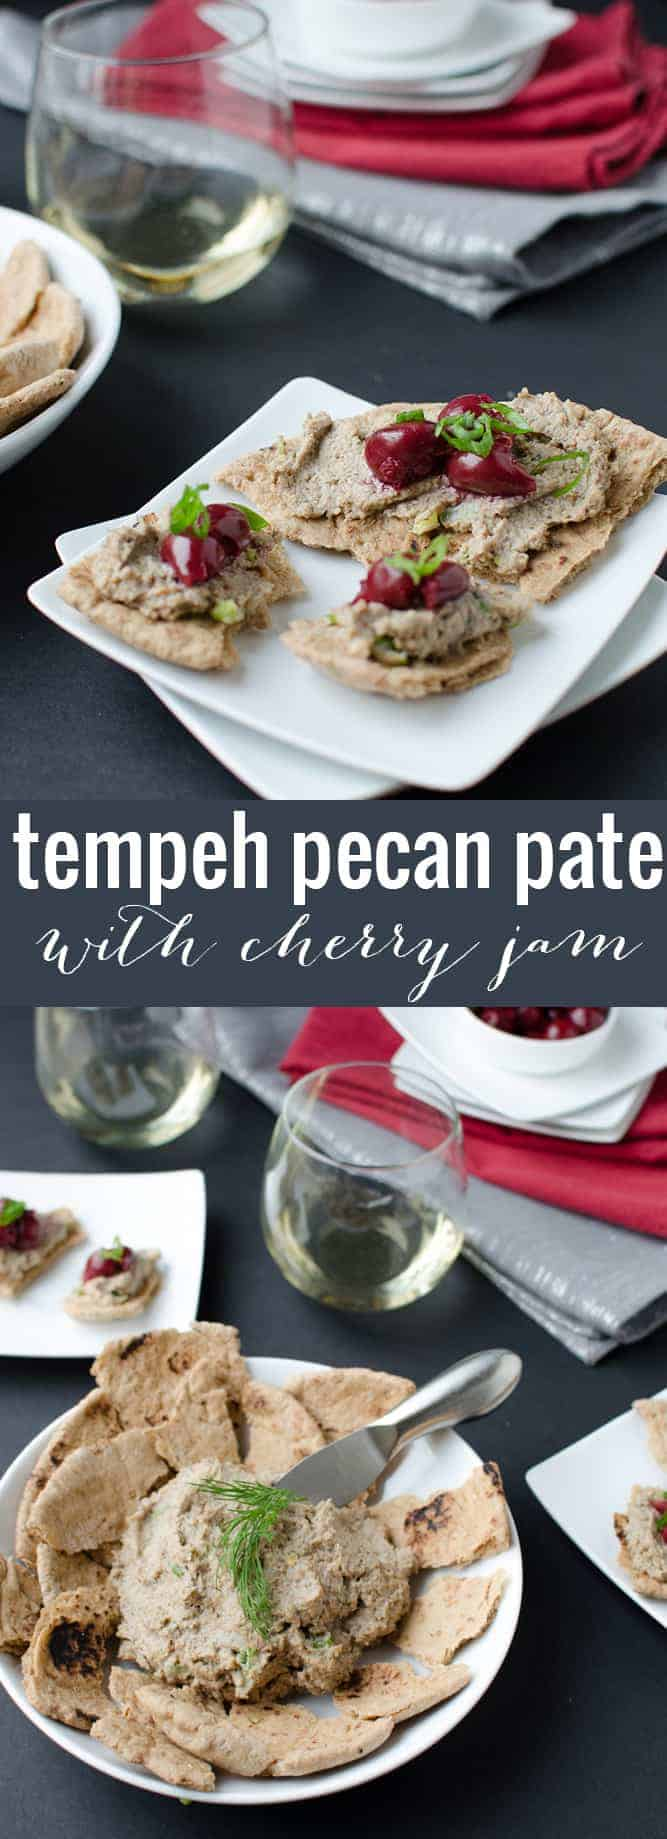 Tempeh Pecan Pate! An amazing appetizer to satisfy everyone!Save this one to make over the holiday season or for happy hour at home! #vegan #vegetarian #appetizer #party #holiday | www.delishknowledge.com